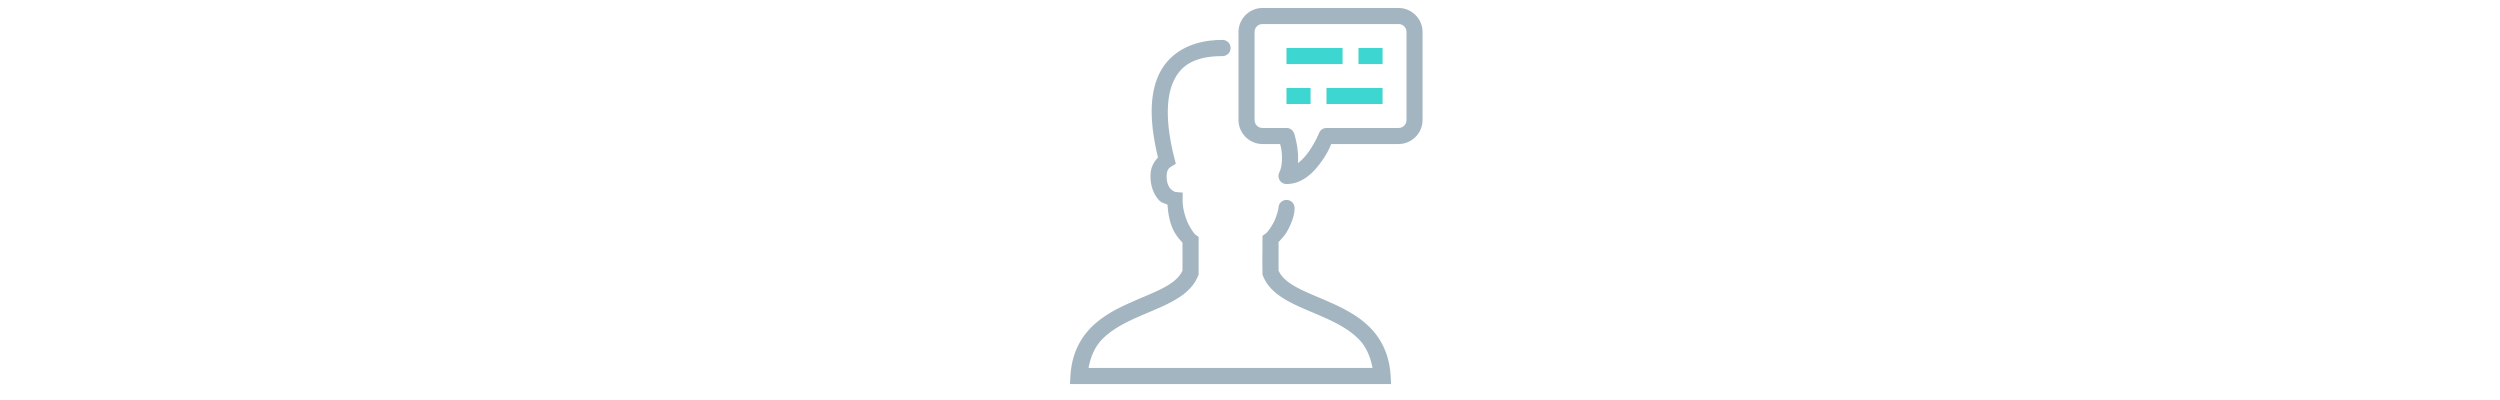 providers-improve-interventions-icon.png